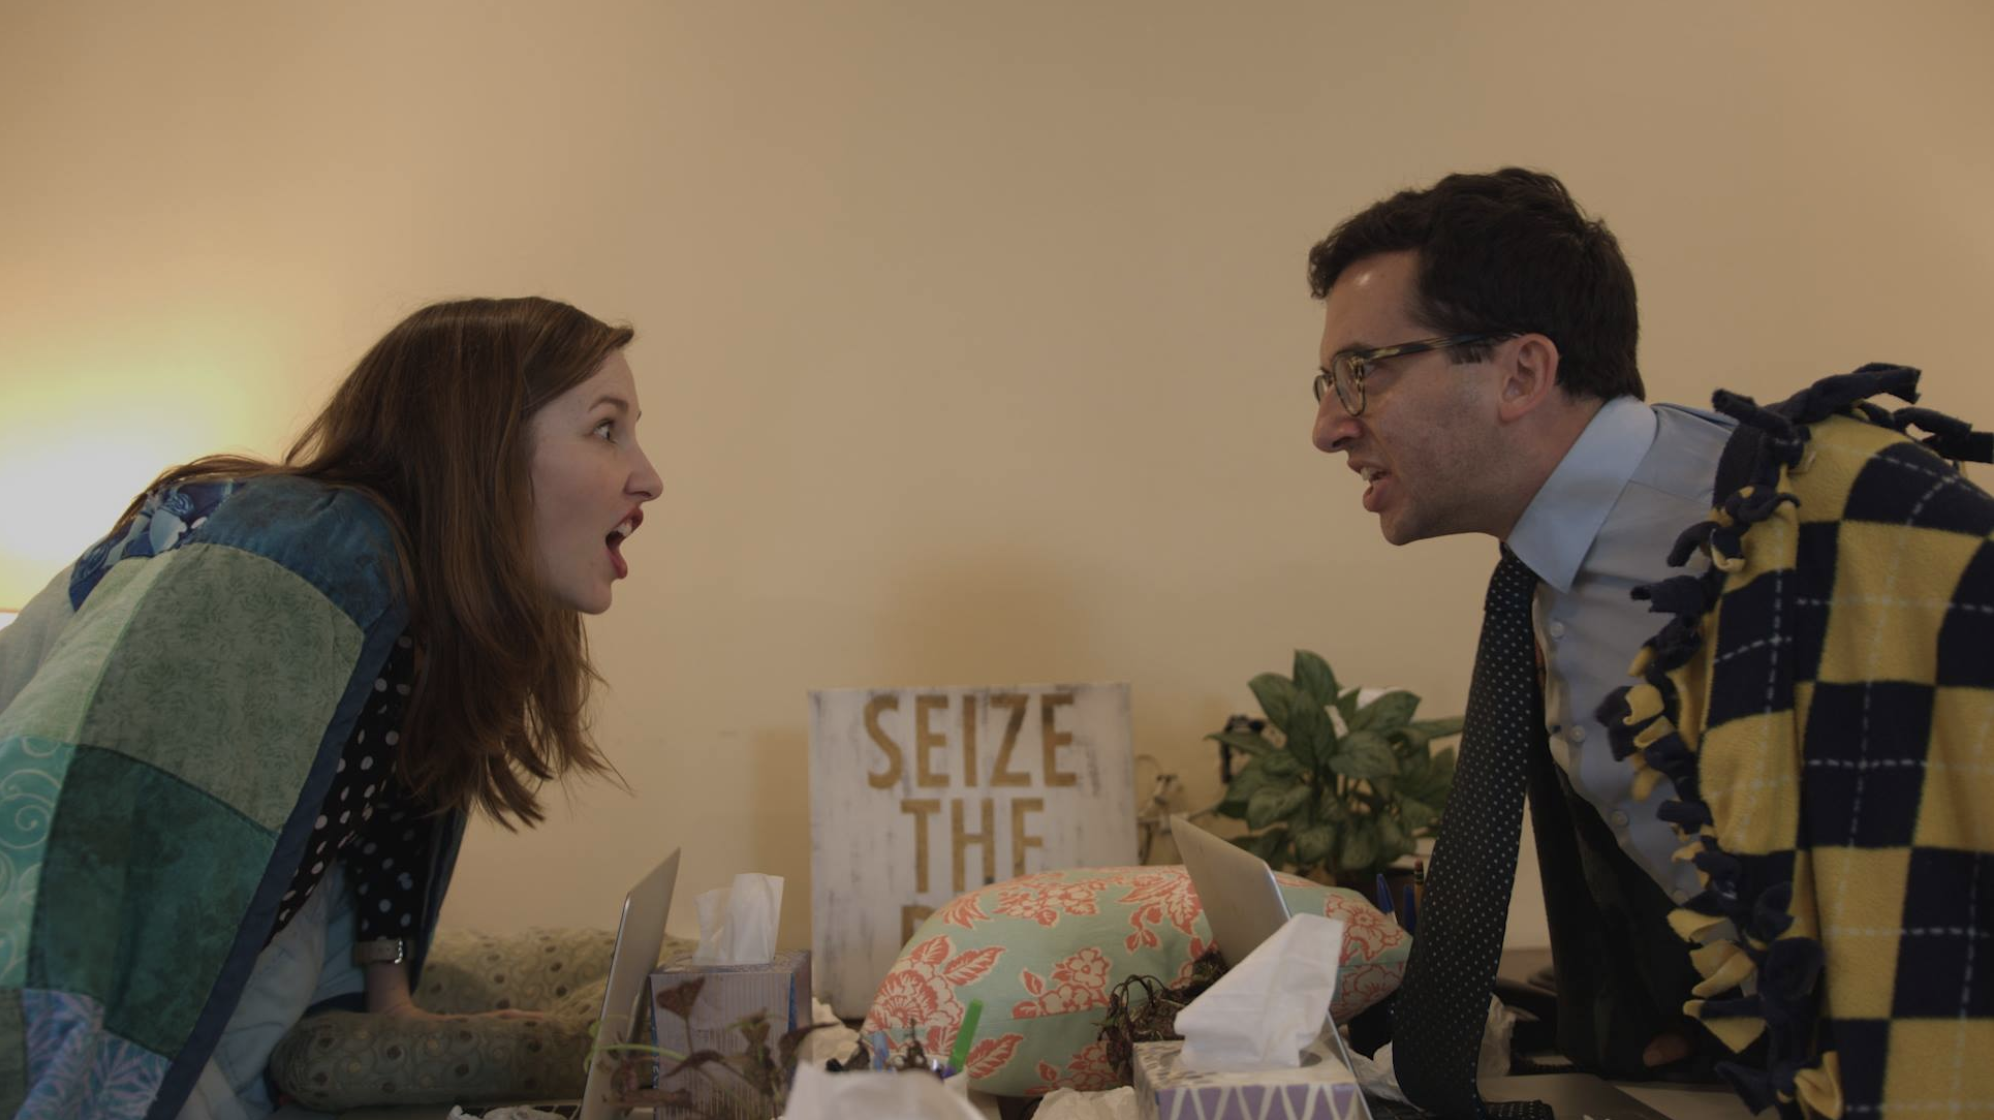 """""""You Should Go Home"""" (4 min) - I directed this original Headcase Productions comedy sketch about two corporate nobodies competing over who can stay at the office the longest and win the promotion that may or may not exist. It was written by Lauren Gilbert and stars the hilarious Martine Moore, Jake Regal, and Jonathan Giles. Check it out HERE!"""